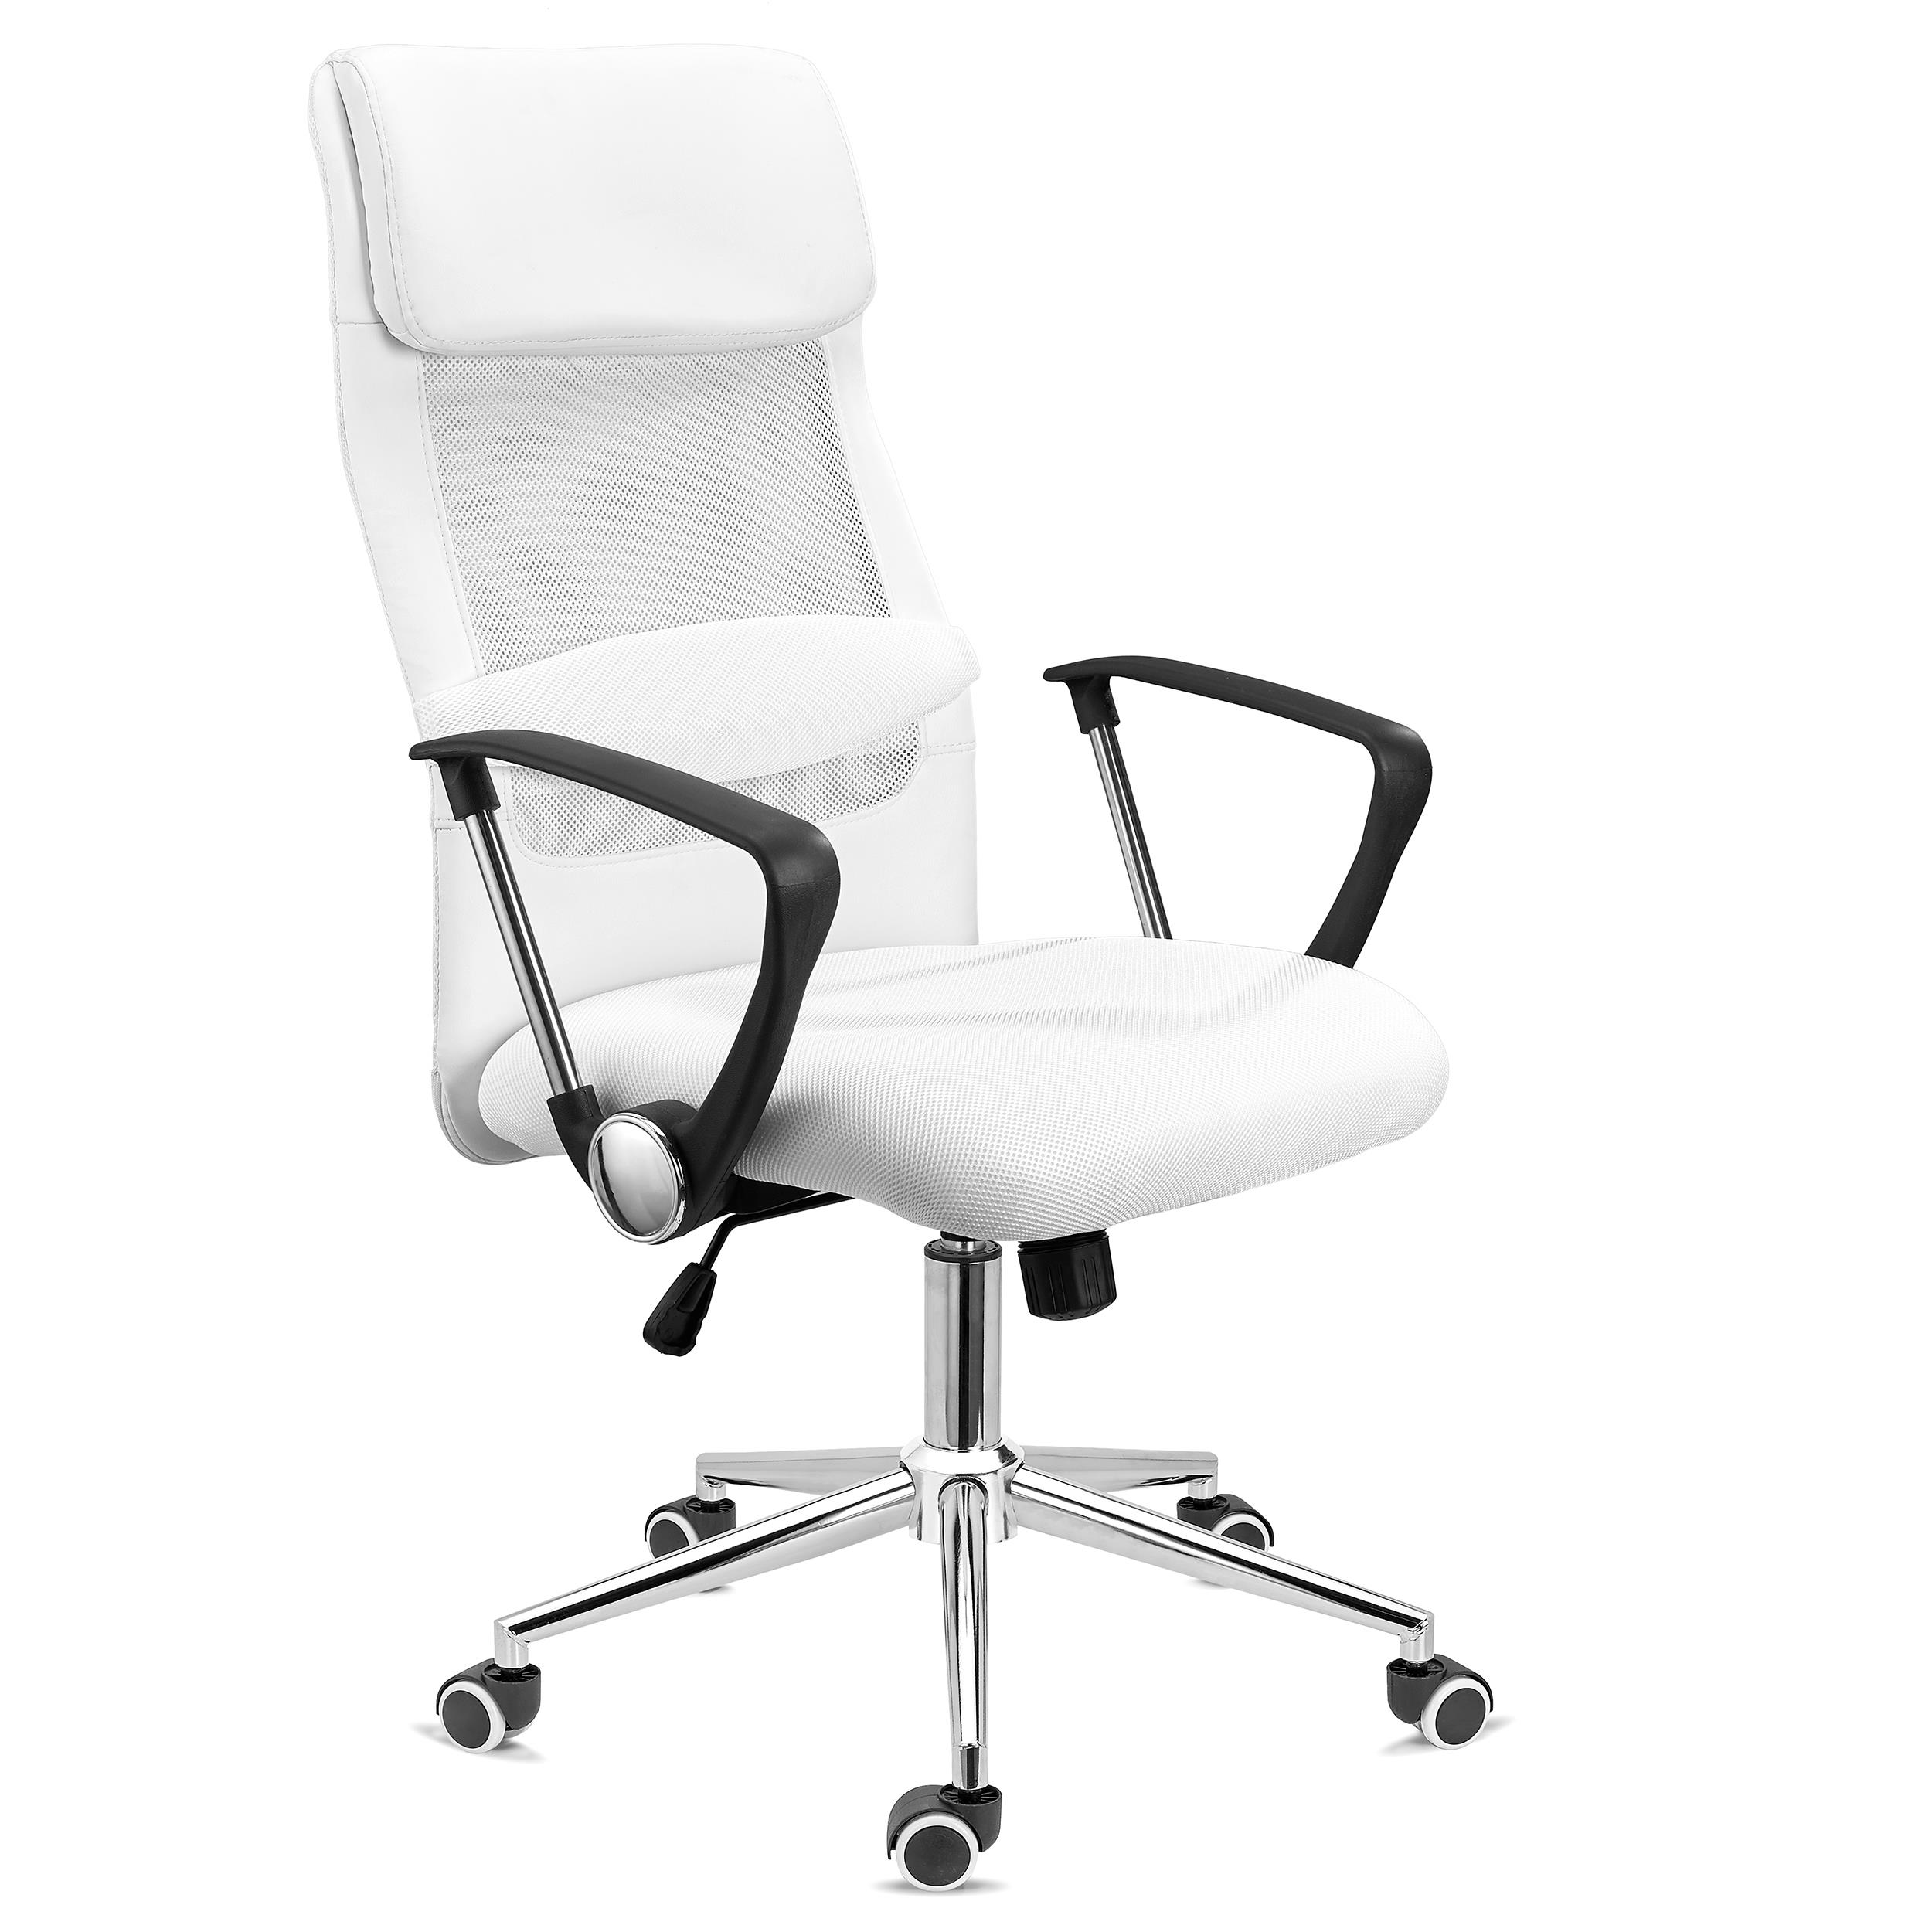 DEMO# Silla de Oficina CAIRO, Reposacabezas Acolchado, Exclusiva Base de Metal, En Blanco